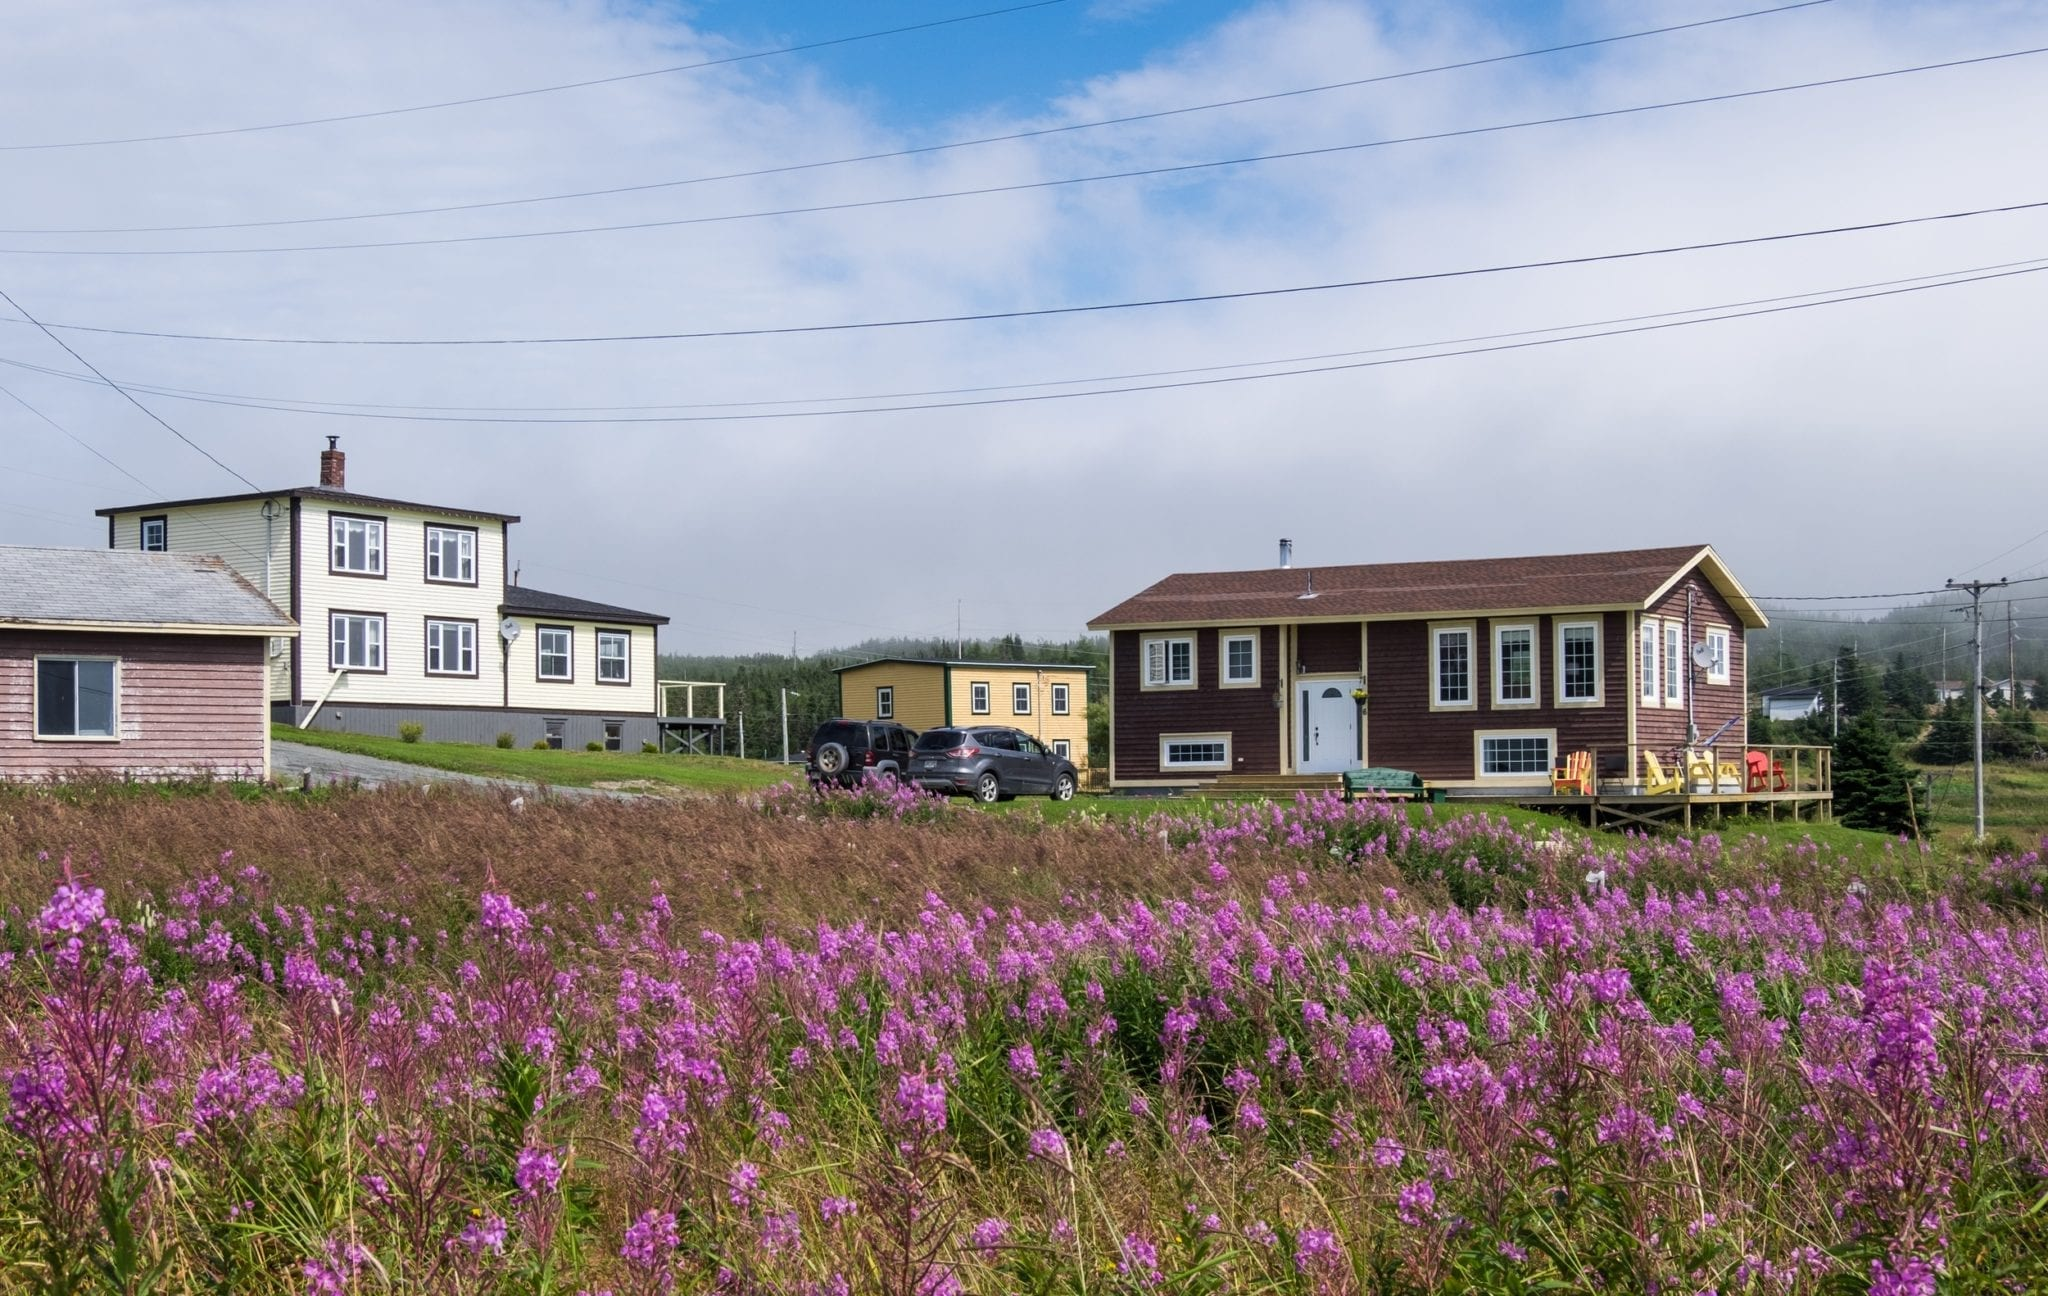 Cottages perched in front of a field of bright purple flowers underneath a cloudy blue and white sky.